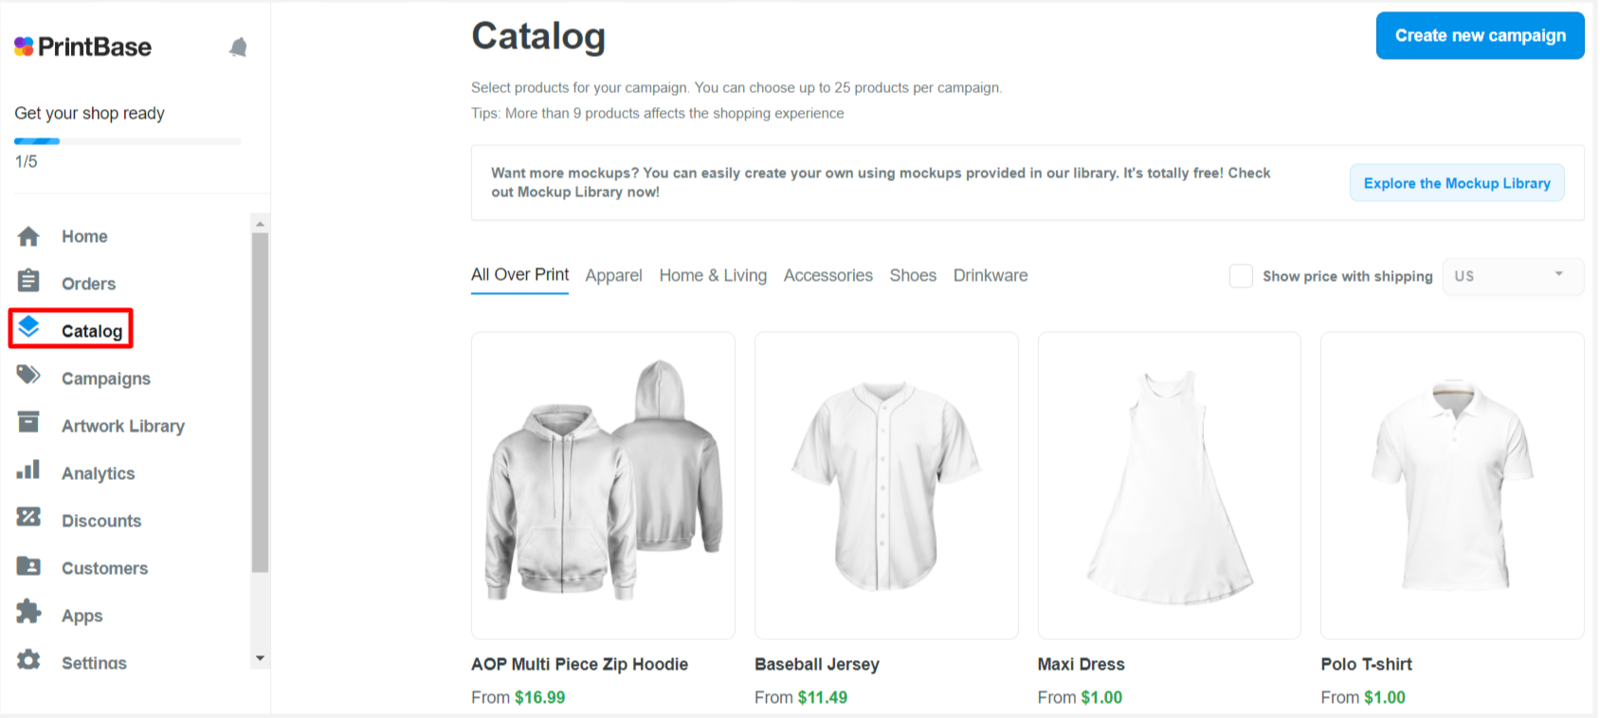 Here is the interface of catalog.